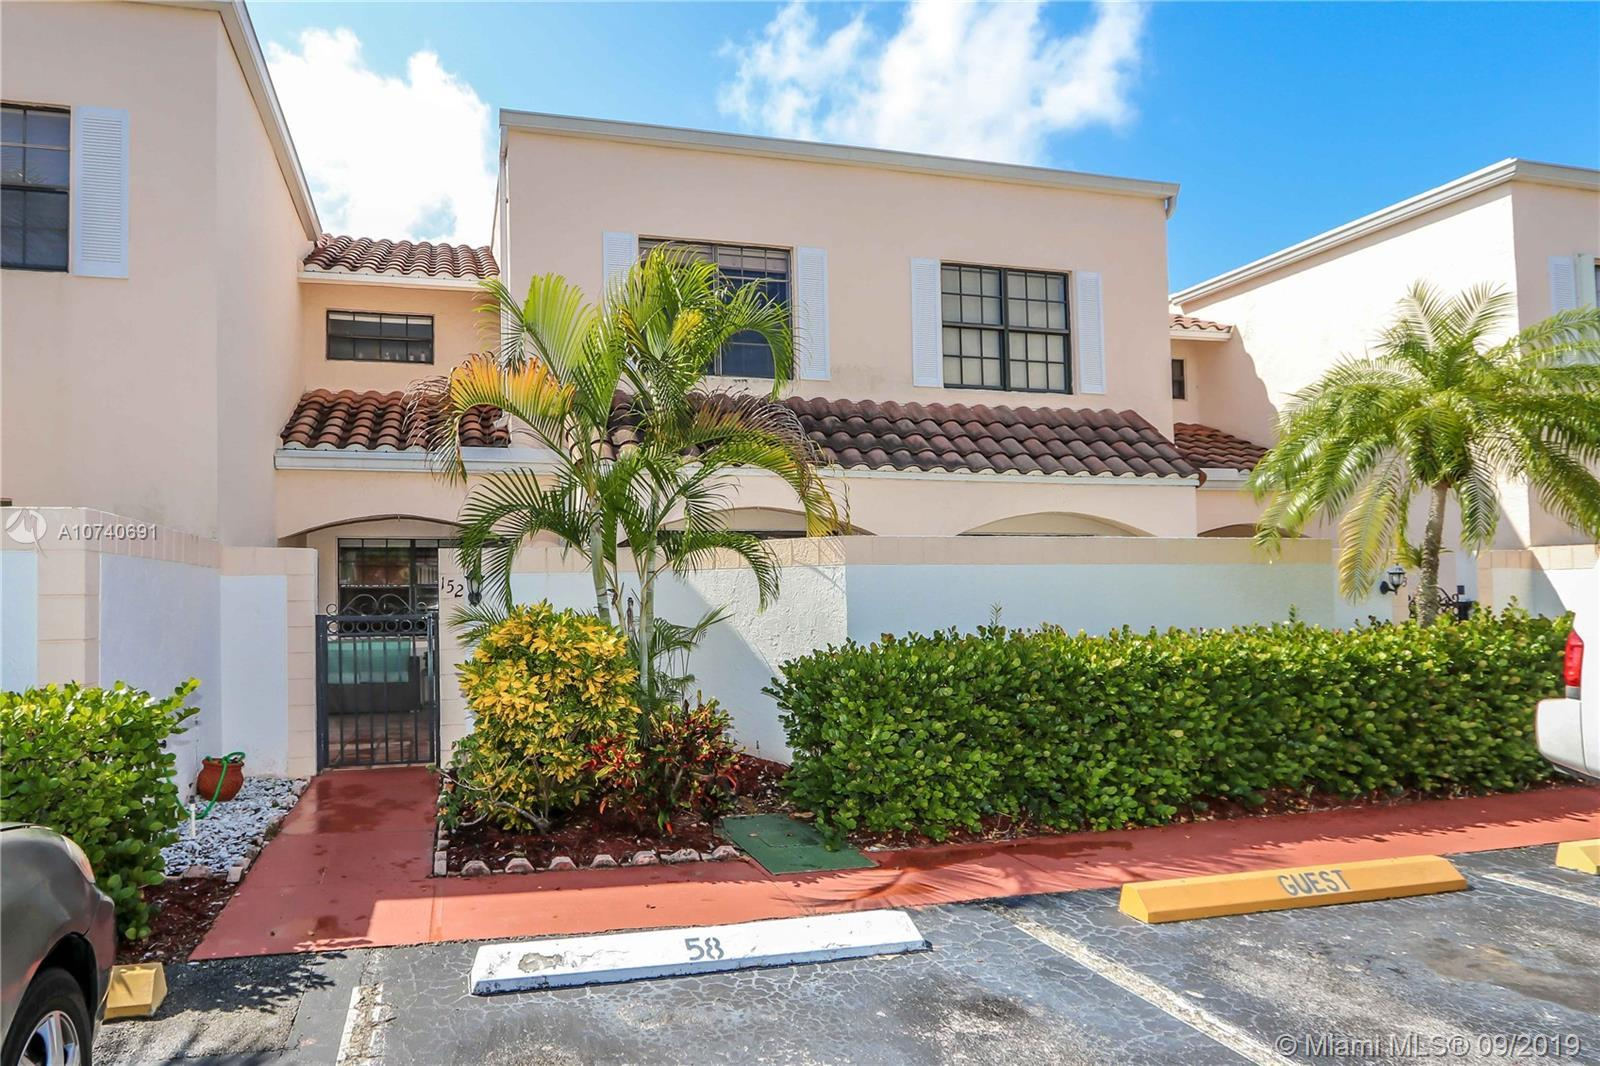 This remodeled 2 bedroom/2.5 bathroom home is located in the peaceful neighborhood of Harbor Village